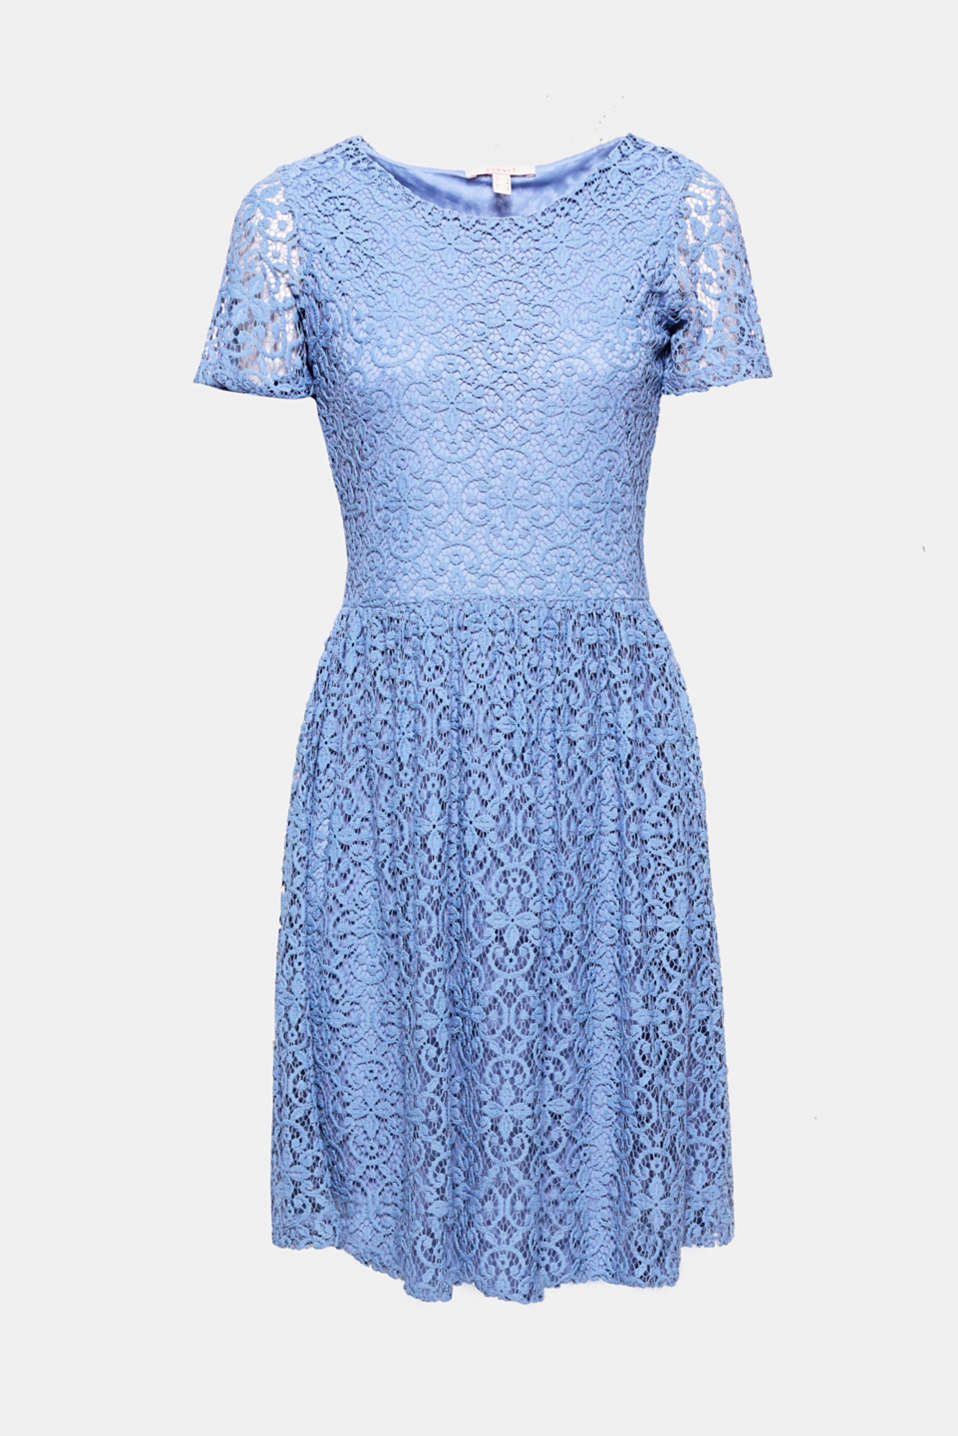 This dress with a swirling skirt highlights just how simple and comfortable lace can be!